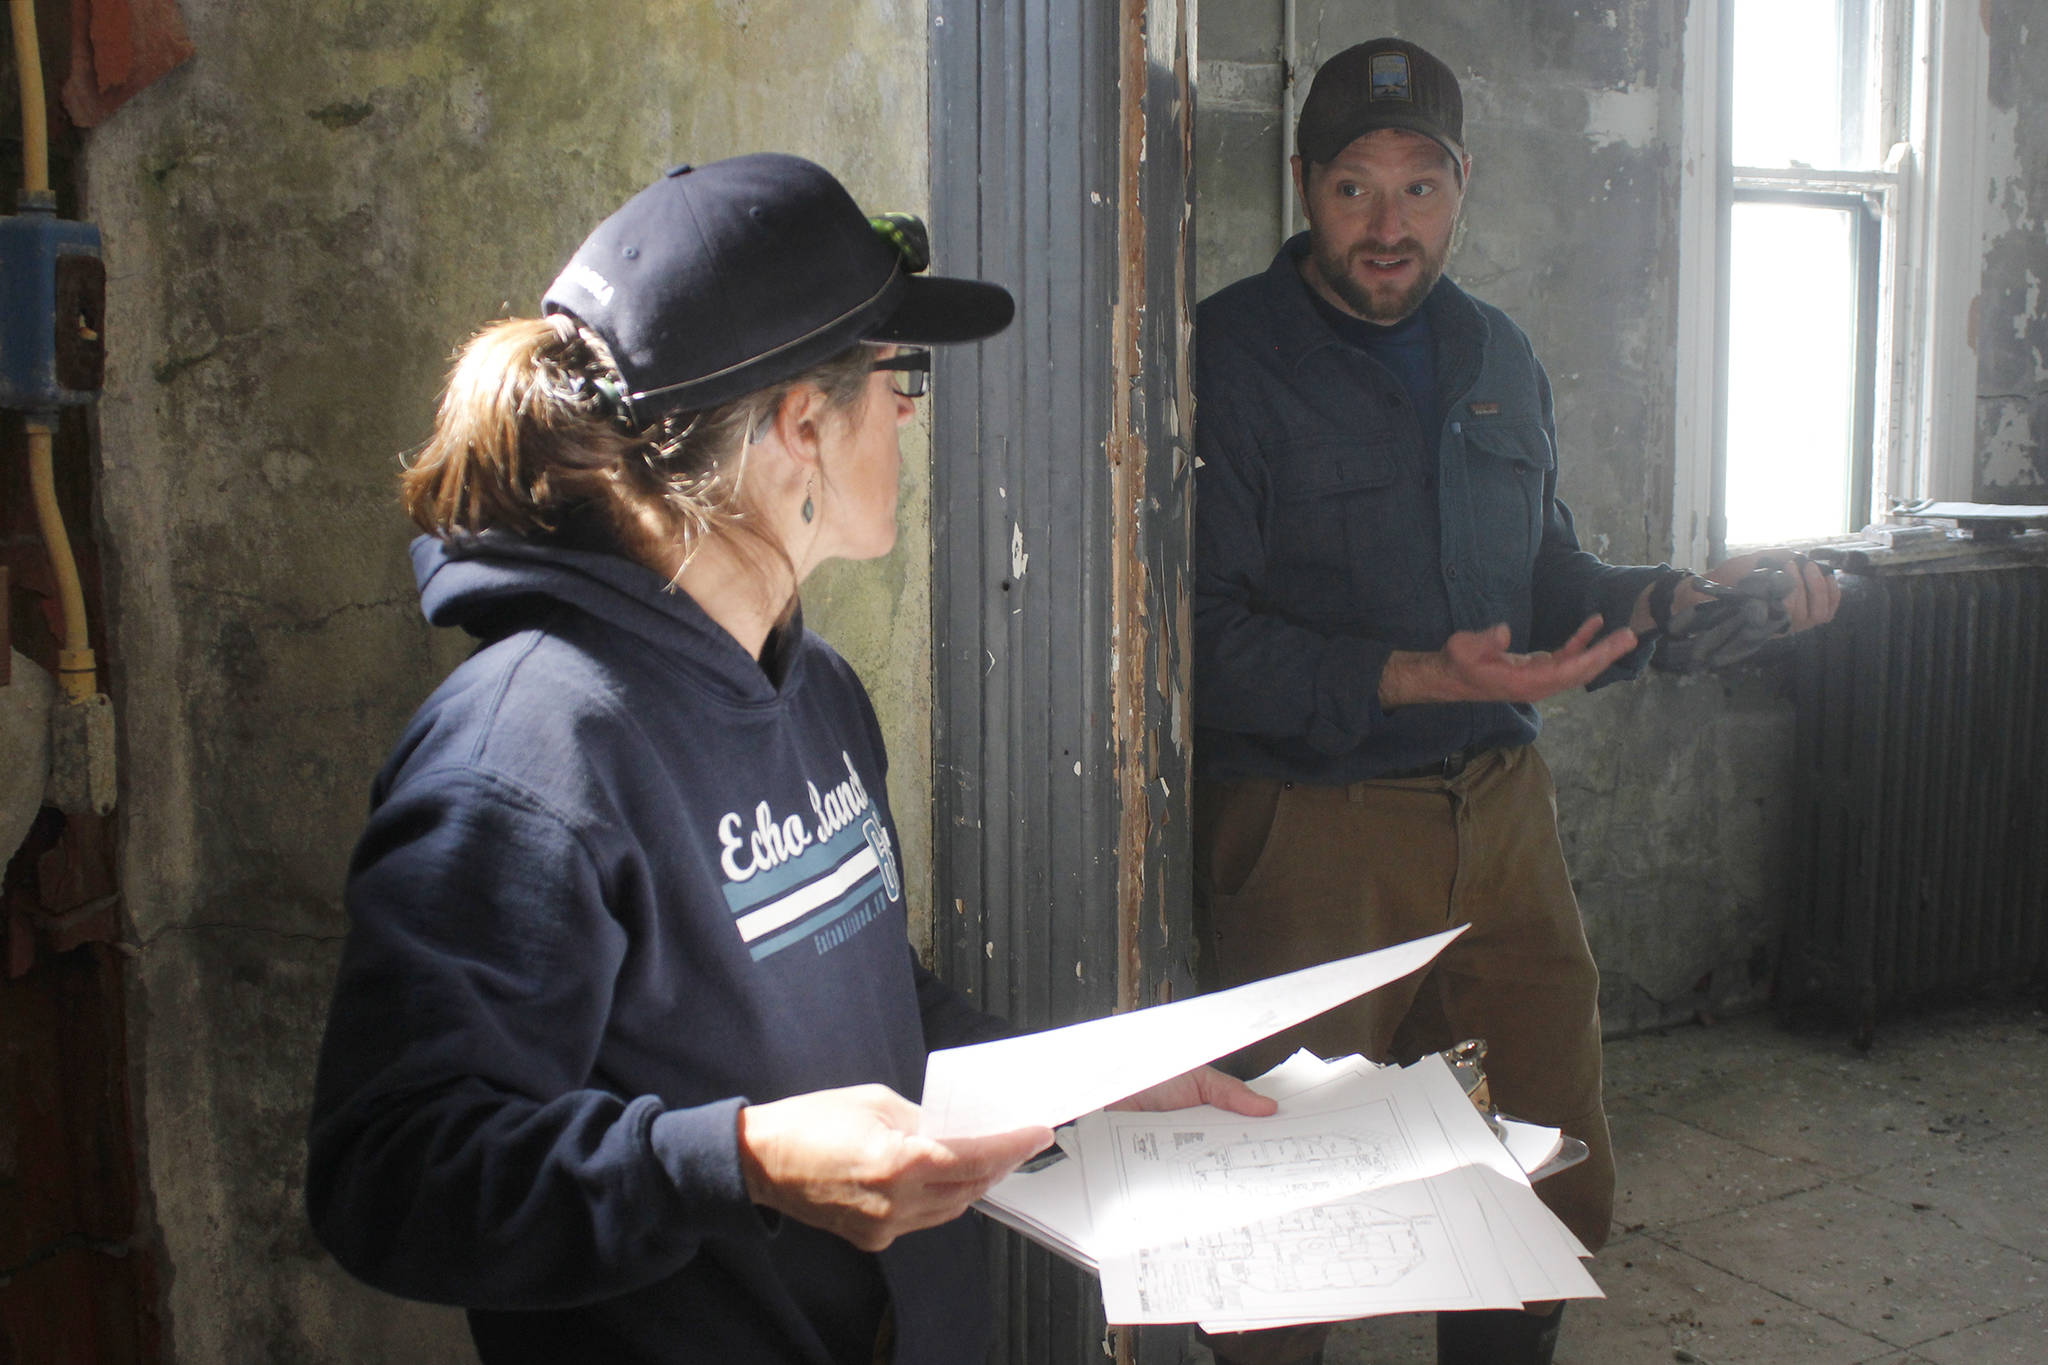 Eldred Rock Lighthouse Preservation Association Executive Director Sue York and Marine Exchange of Alaska's board representative Jonathan Wood share ideas at the Eldred Rock Lighthouse on Monday, April 29, 2019. (Alex McCarthy | Juneau Empire)